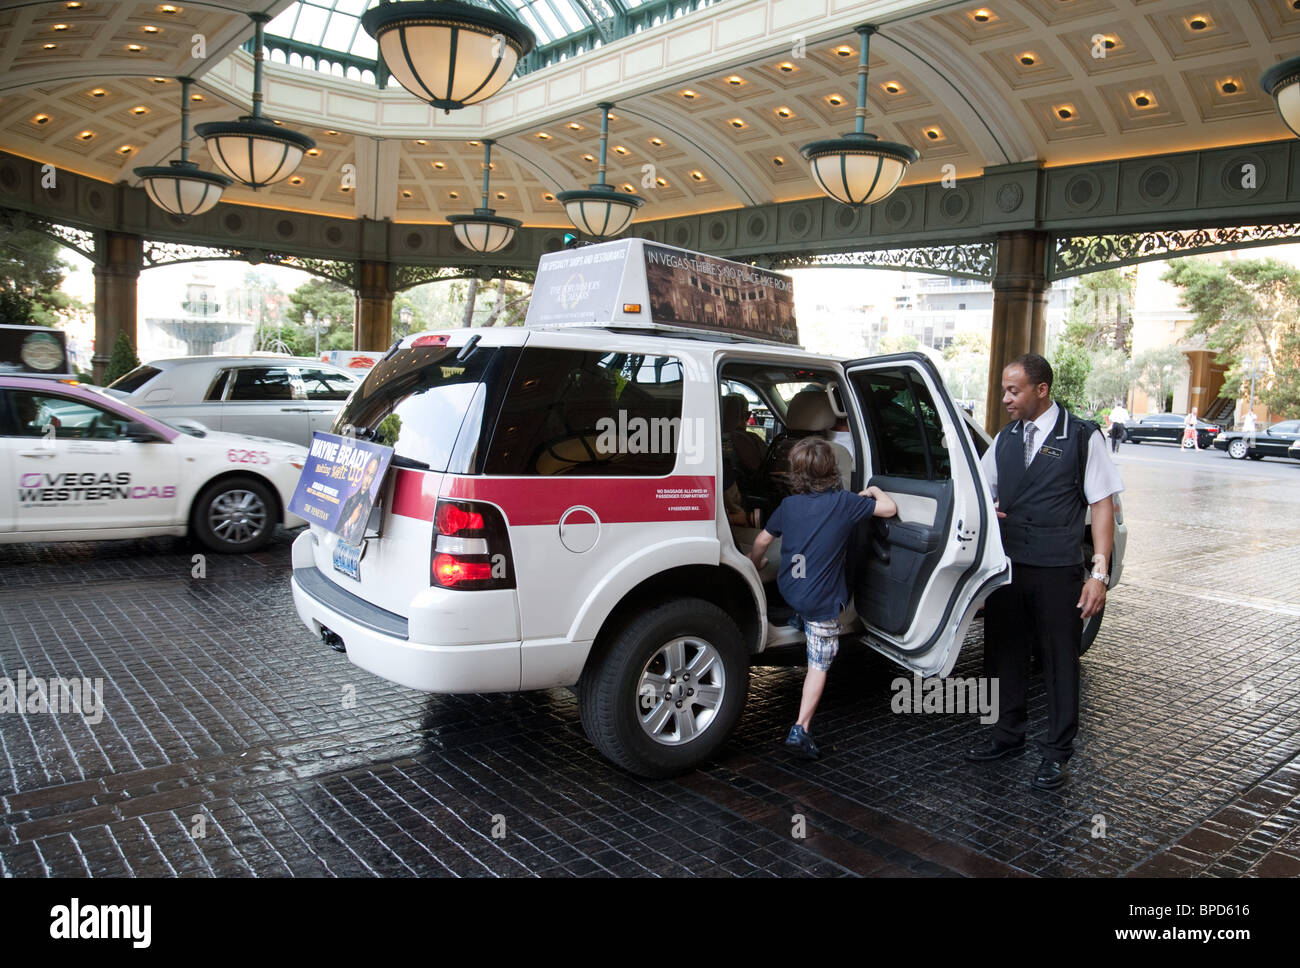 Bellboy helping people into a taxi, The Bellagio Hotel, Las Vegas Nevada USA - Stock Image